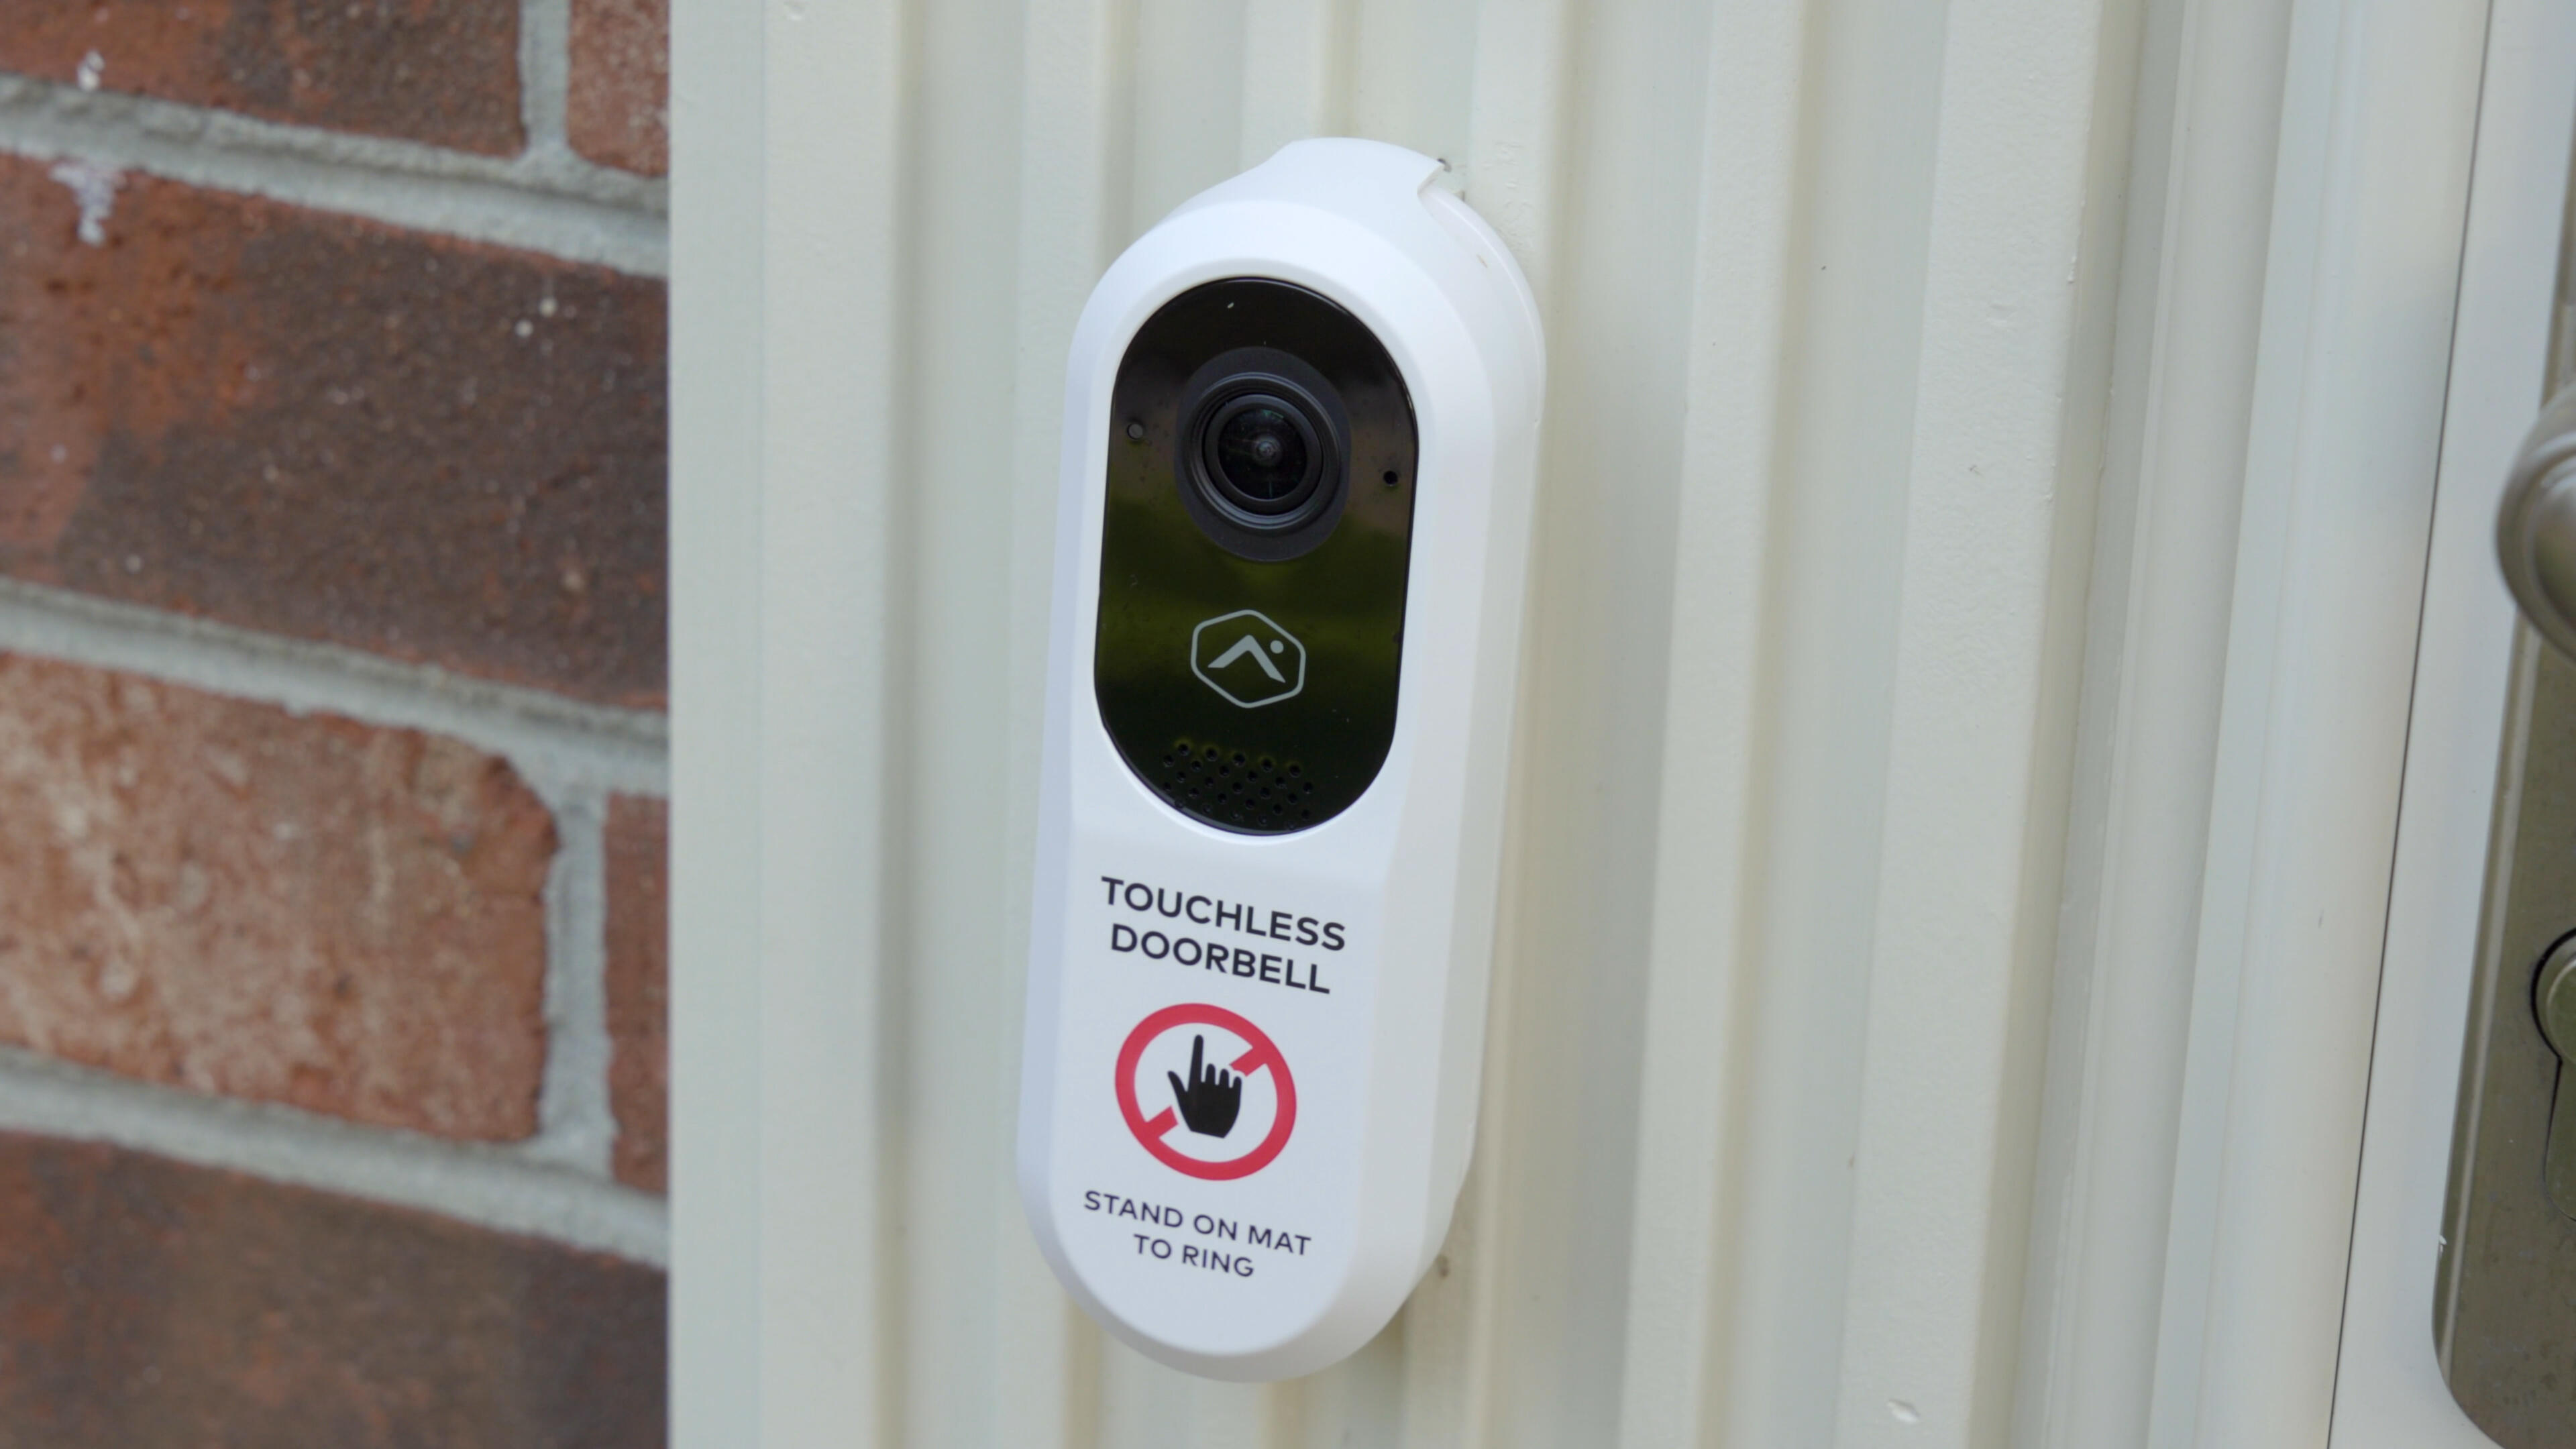 Video: The Alarm.com Touchless Video Doorbell keeps your hands free